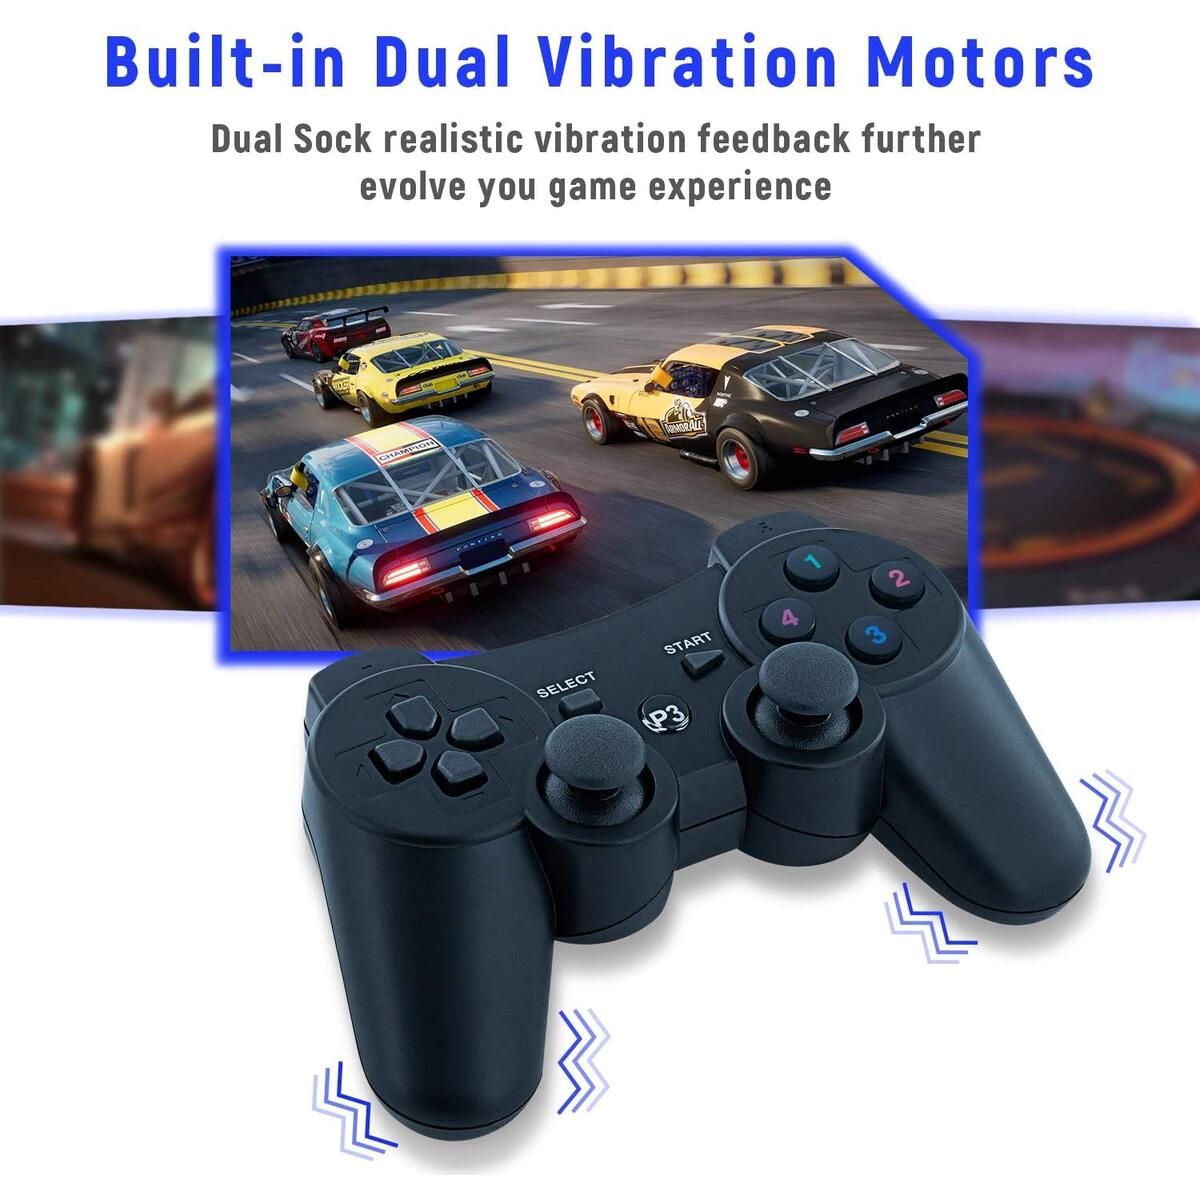 Mcbazel Wireless Double Shock Controller for PS3 PS3 Slim PS3 Super Slim Console with Charging Cable